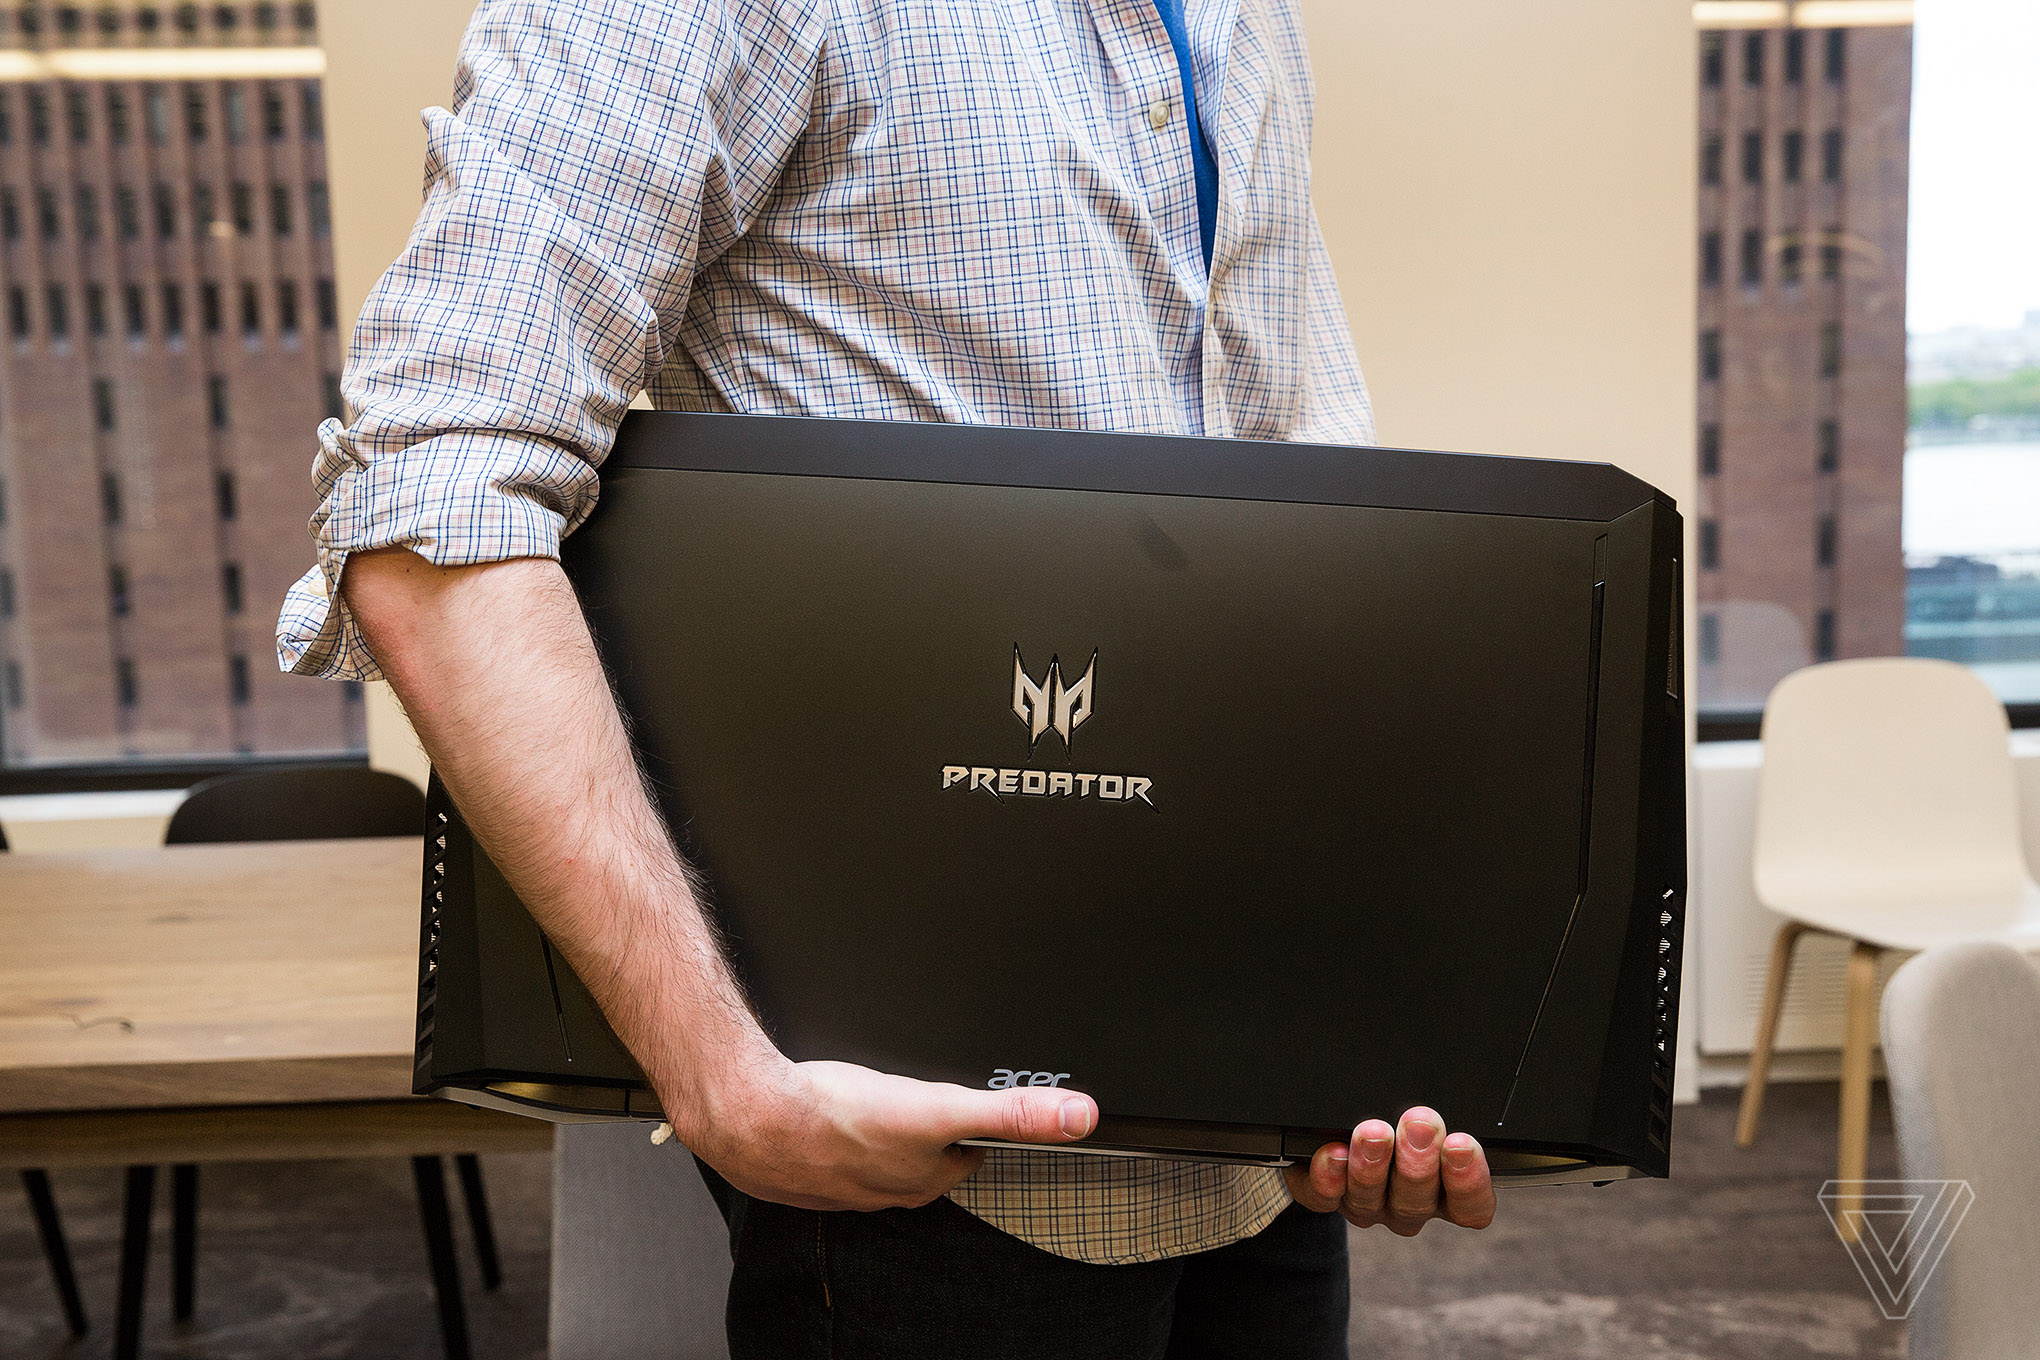 Acer predator 21 x review overpowered overkill the verge the 21 x is simply not very good at regular computer tasks amipublicfo Gallery